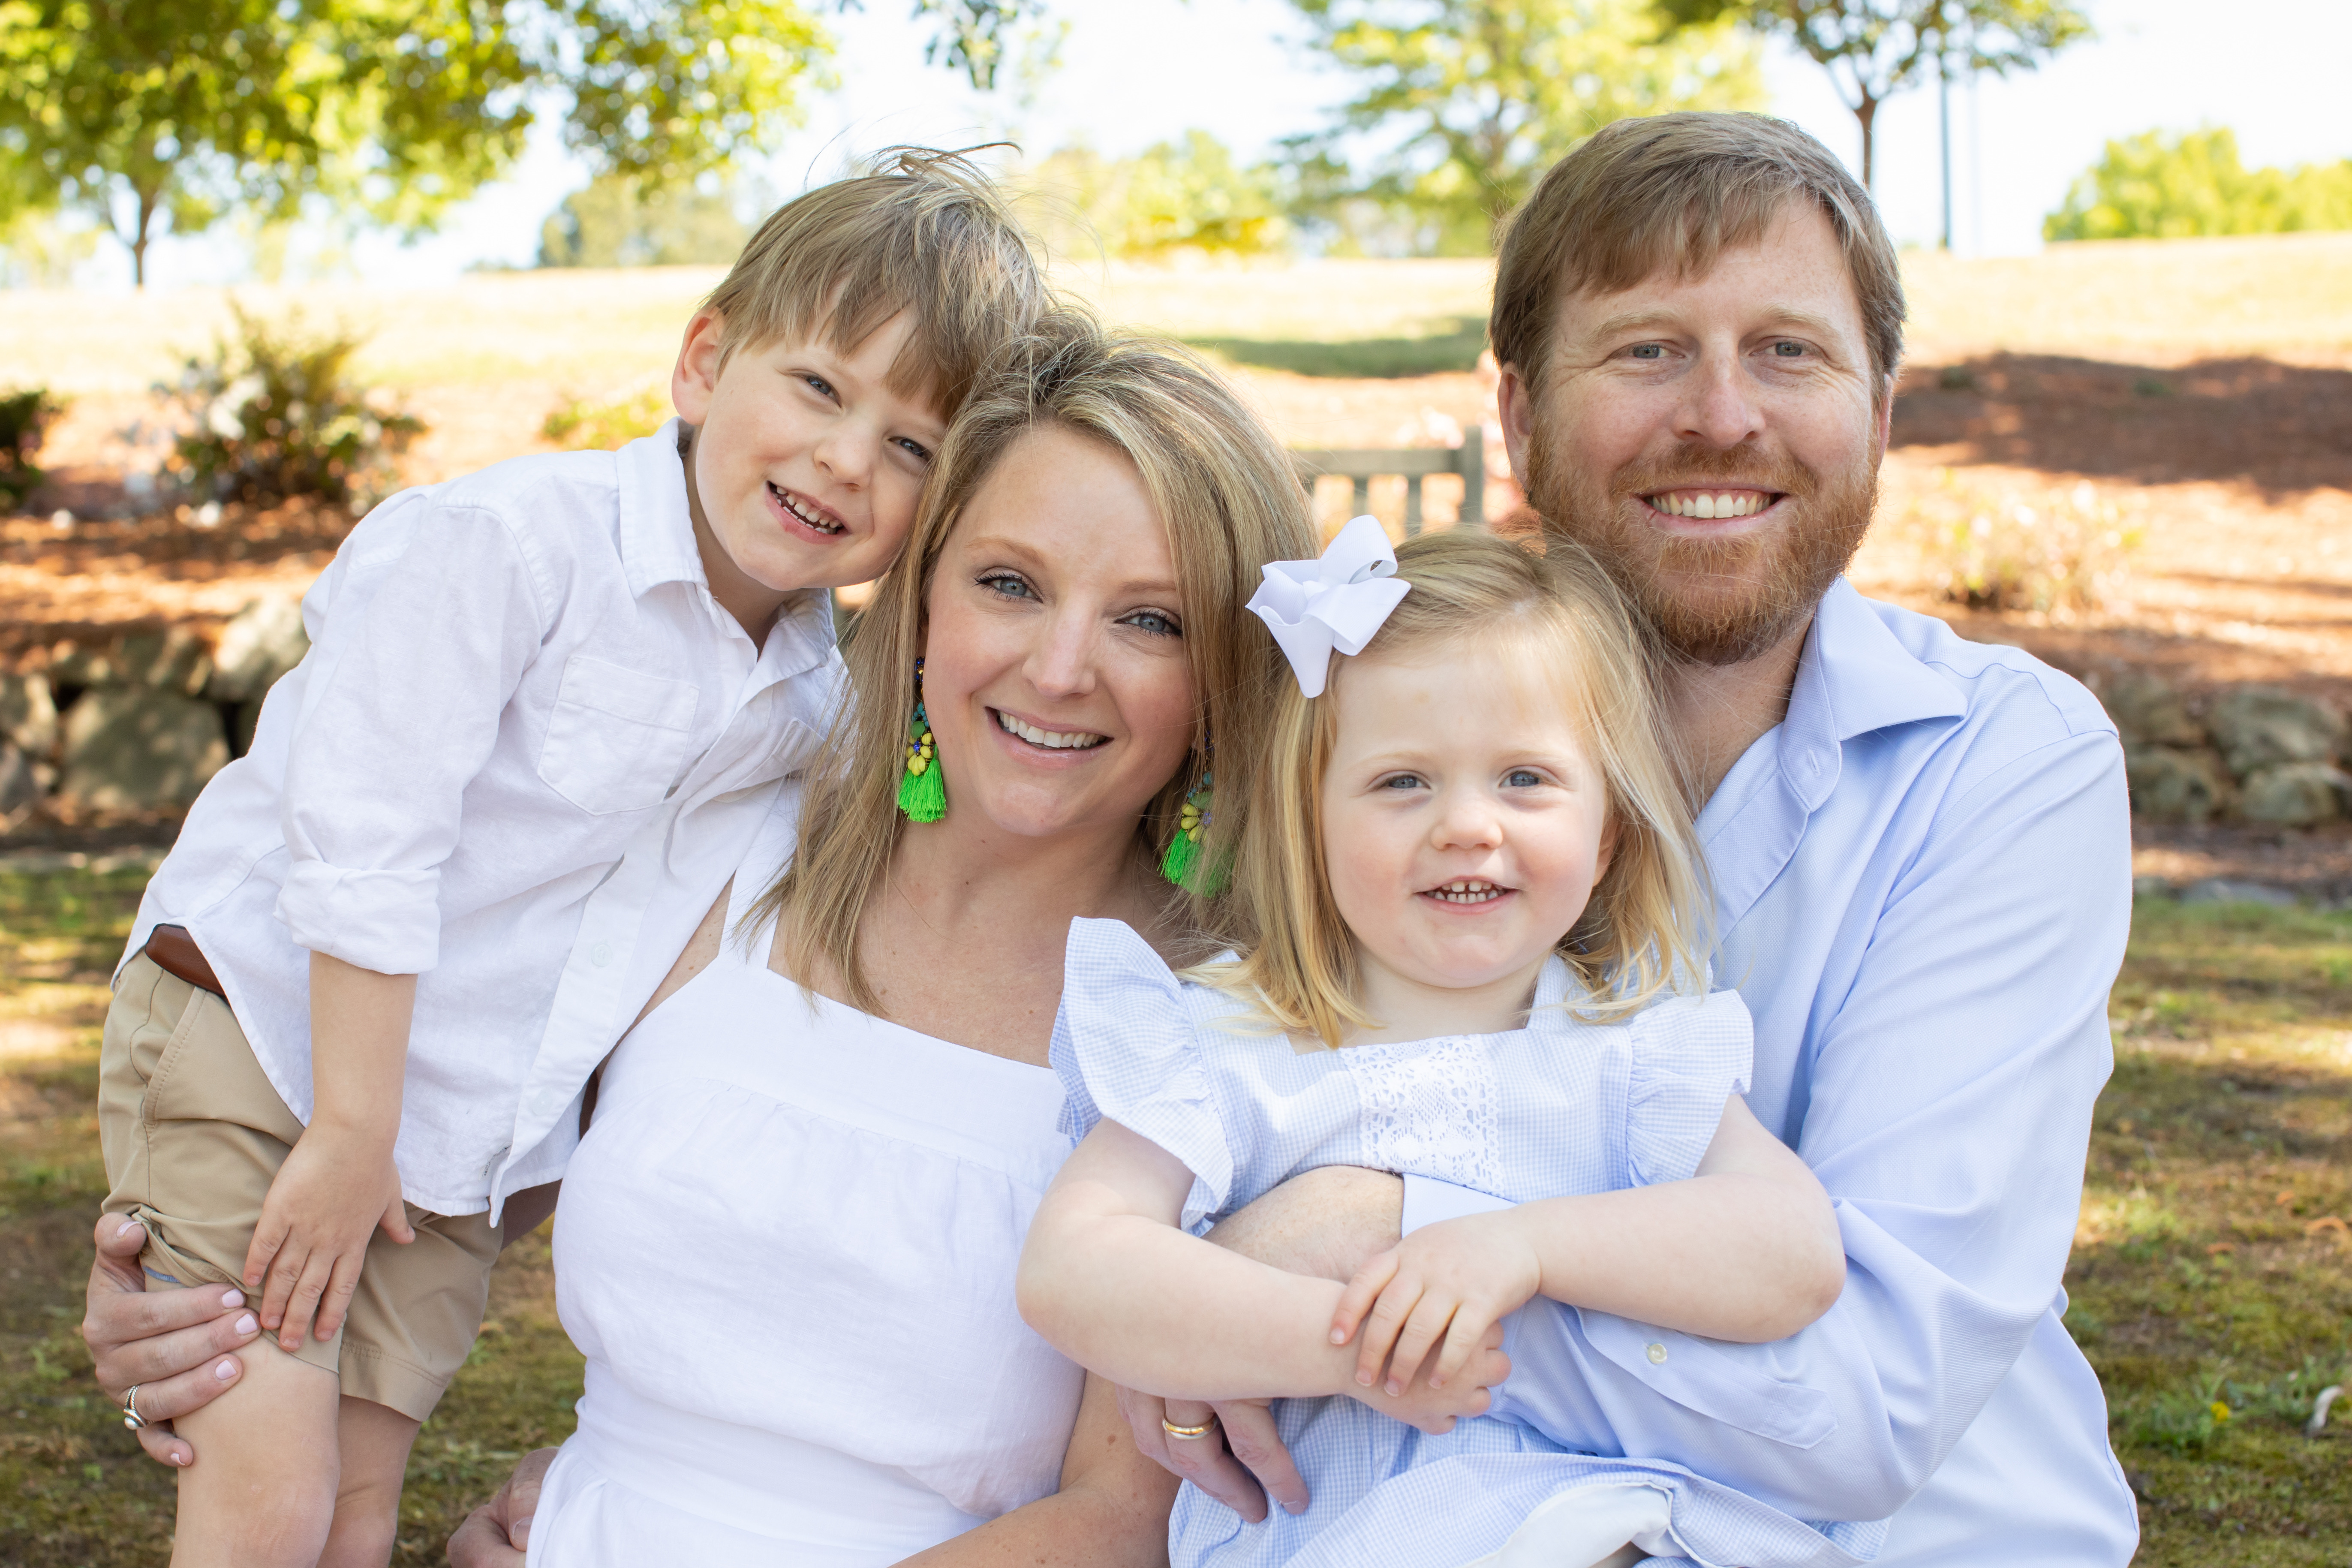 Family of the Month: A Trusted Partnership